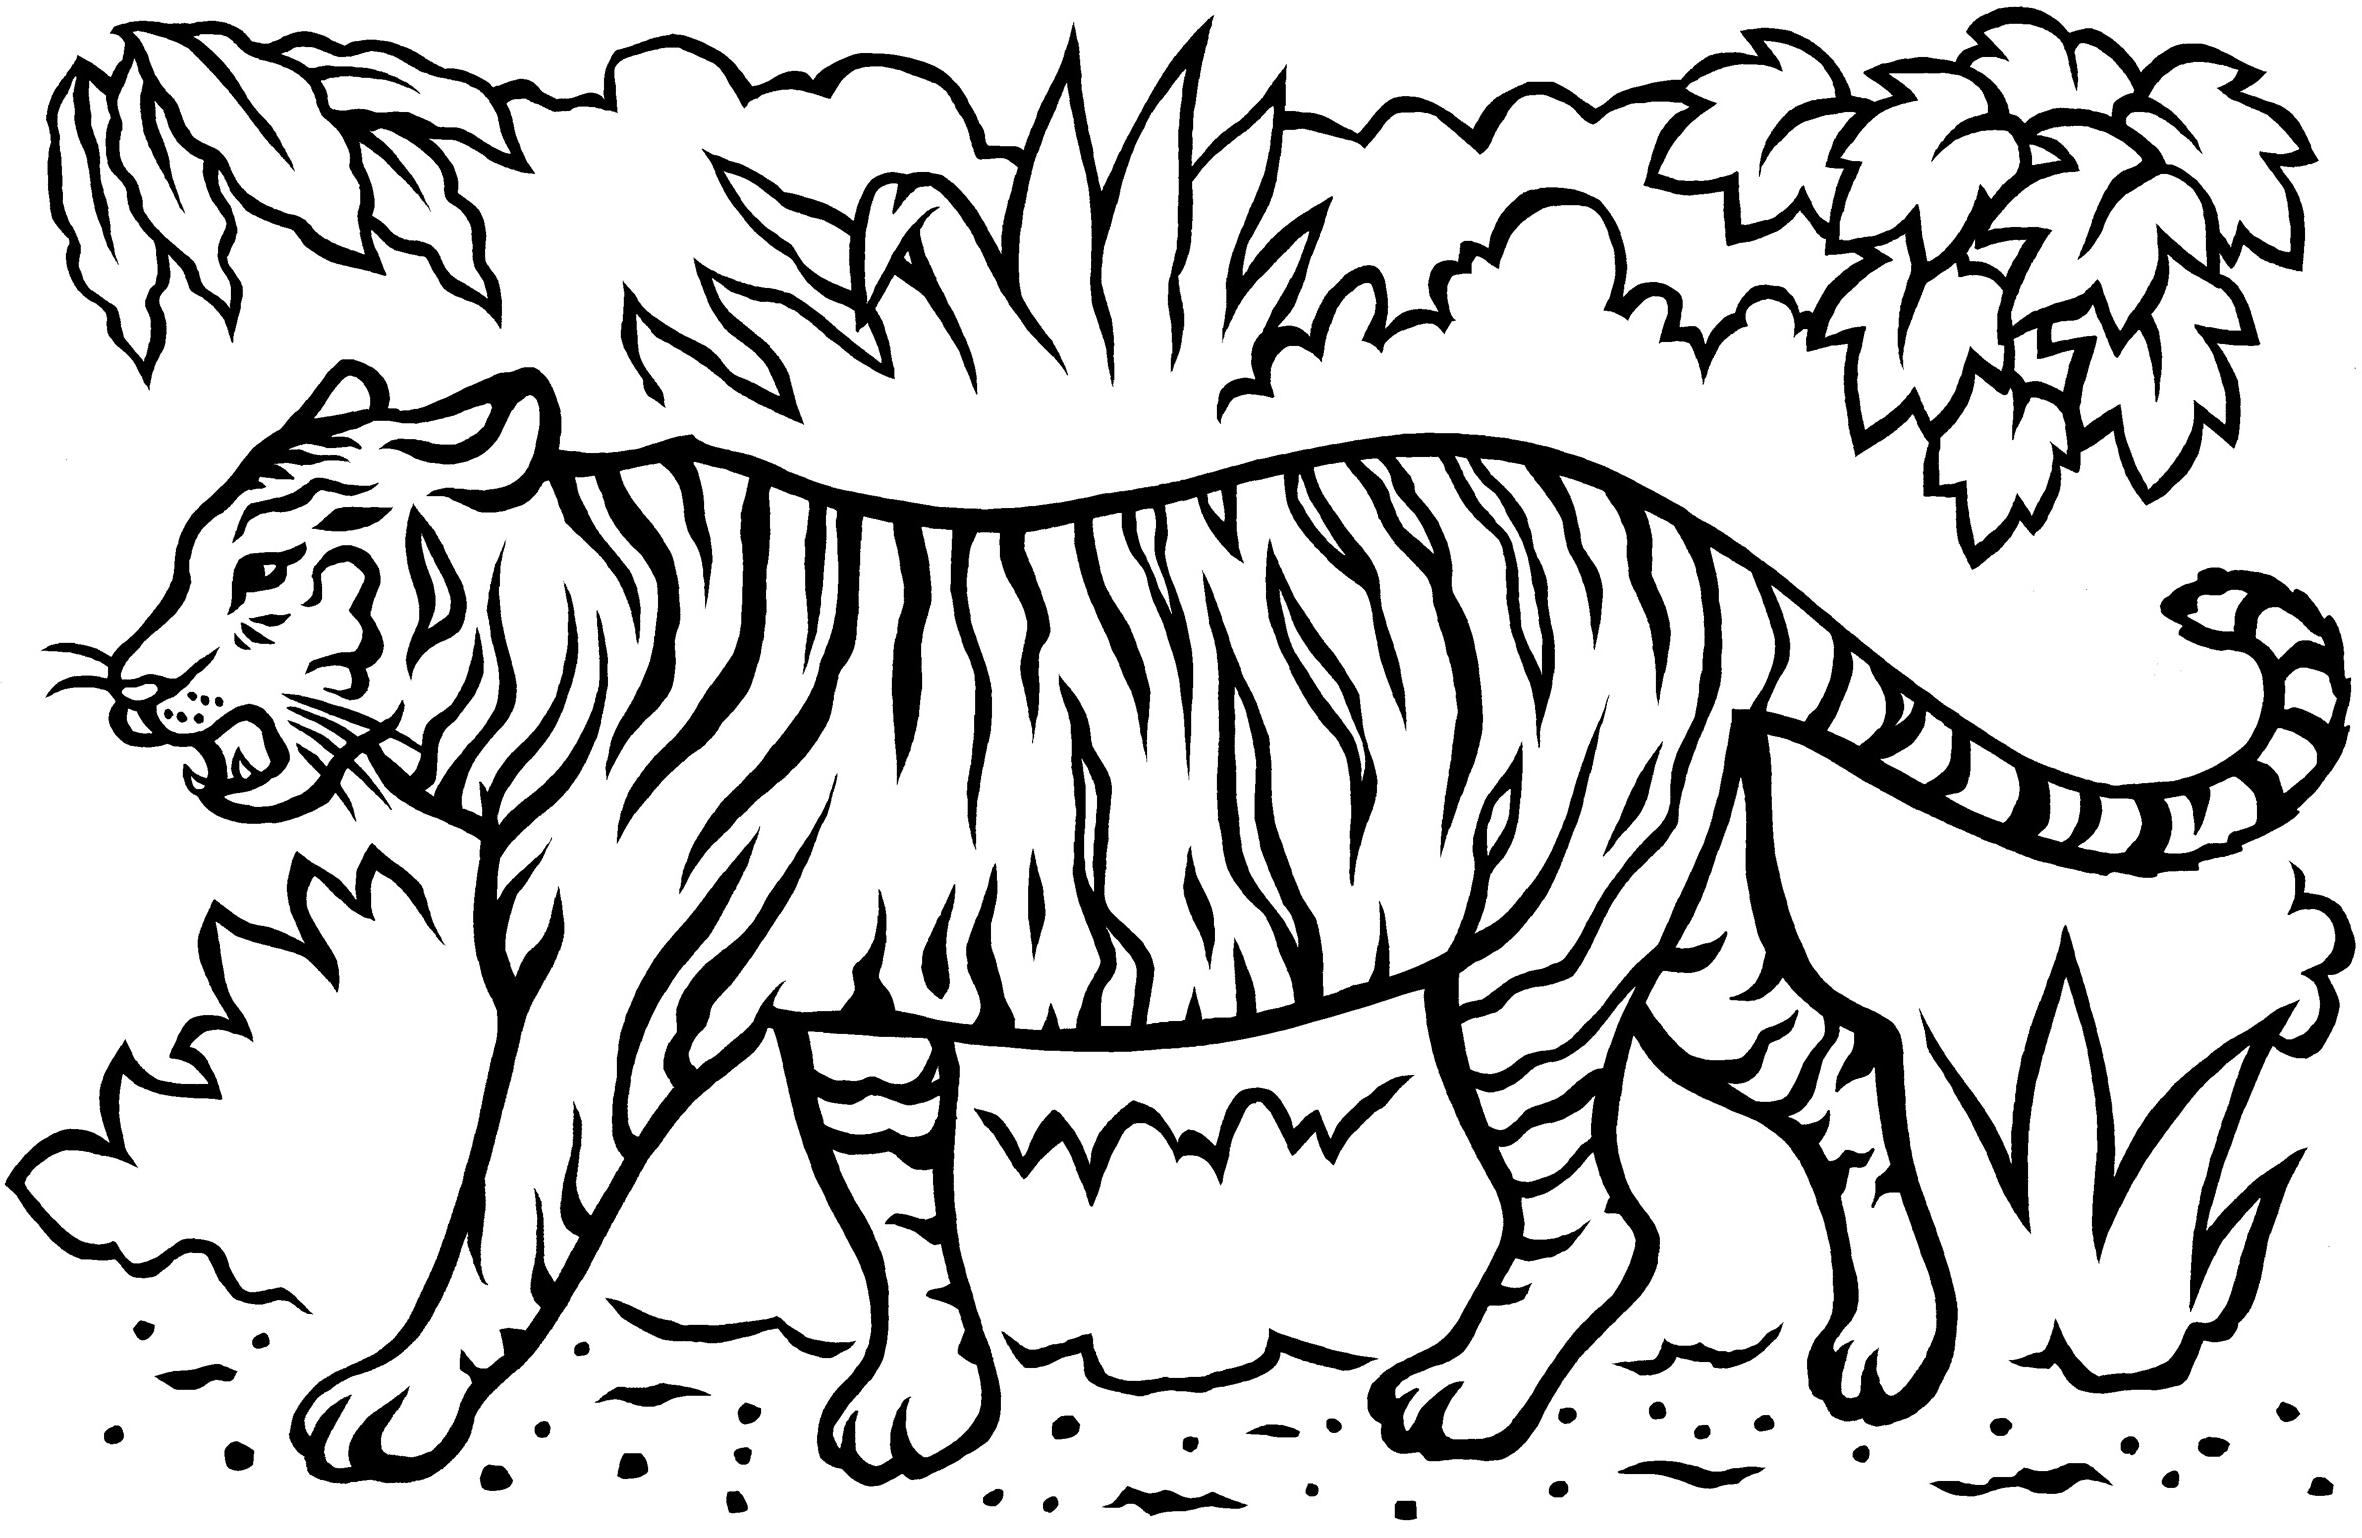 2362x1538 Tiger Coloring Page Template White Tiger Coloring Pages Coloring